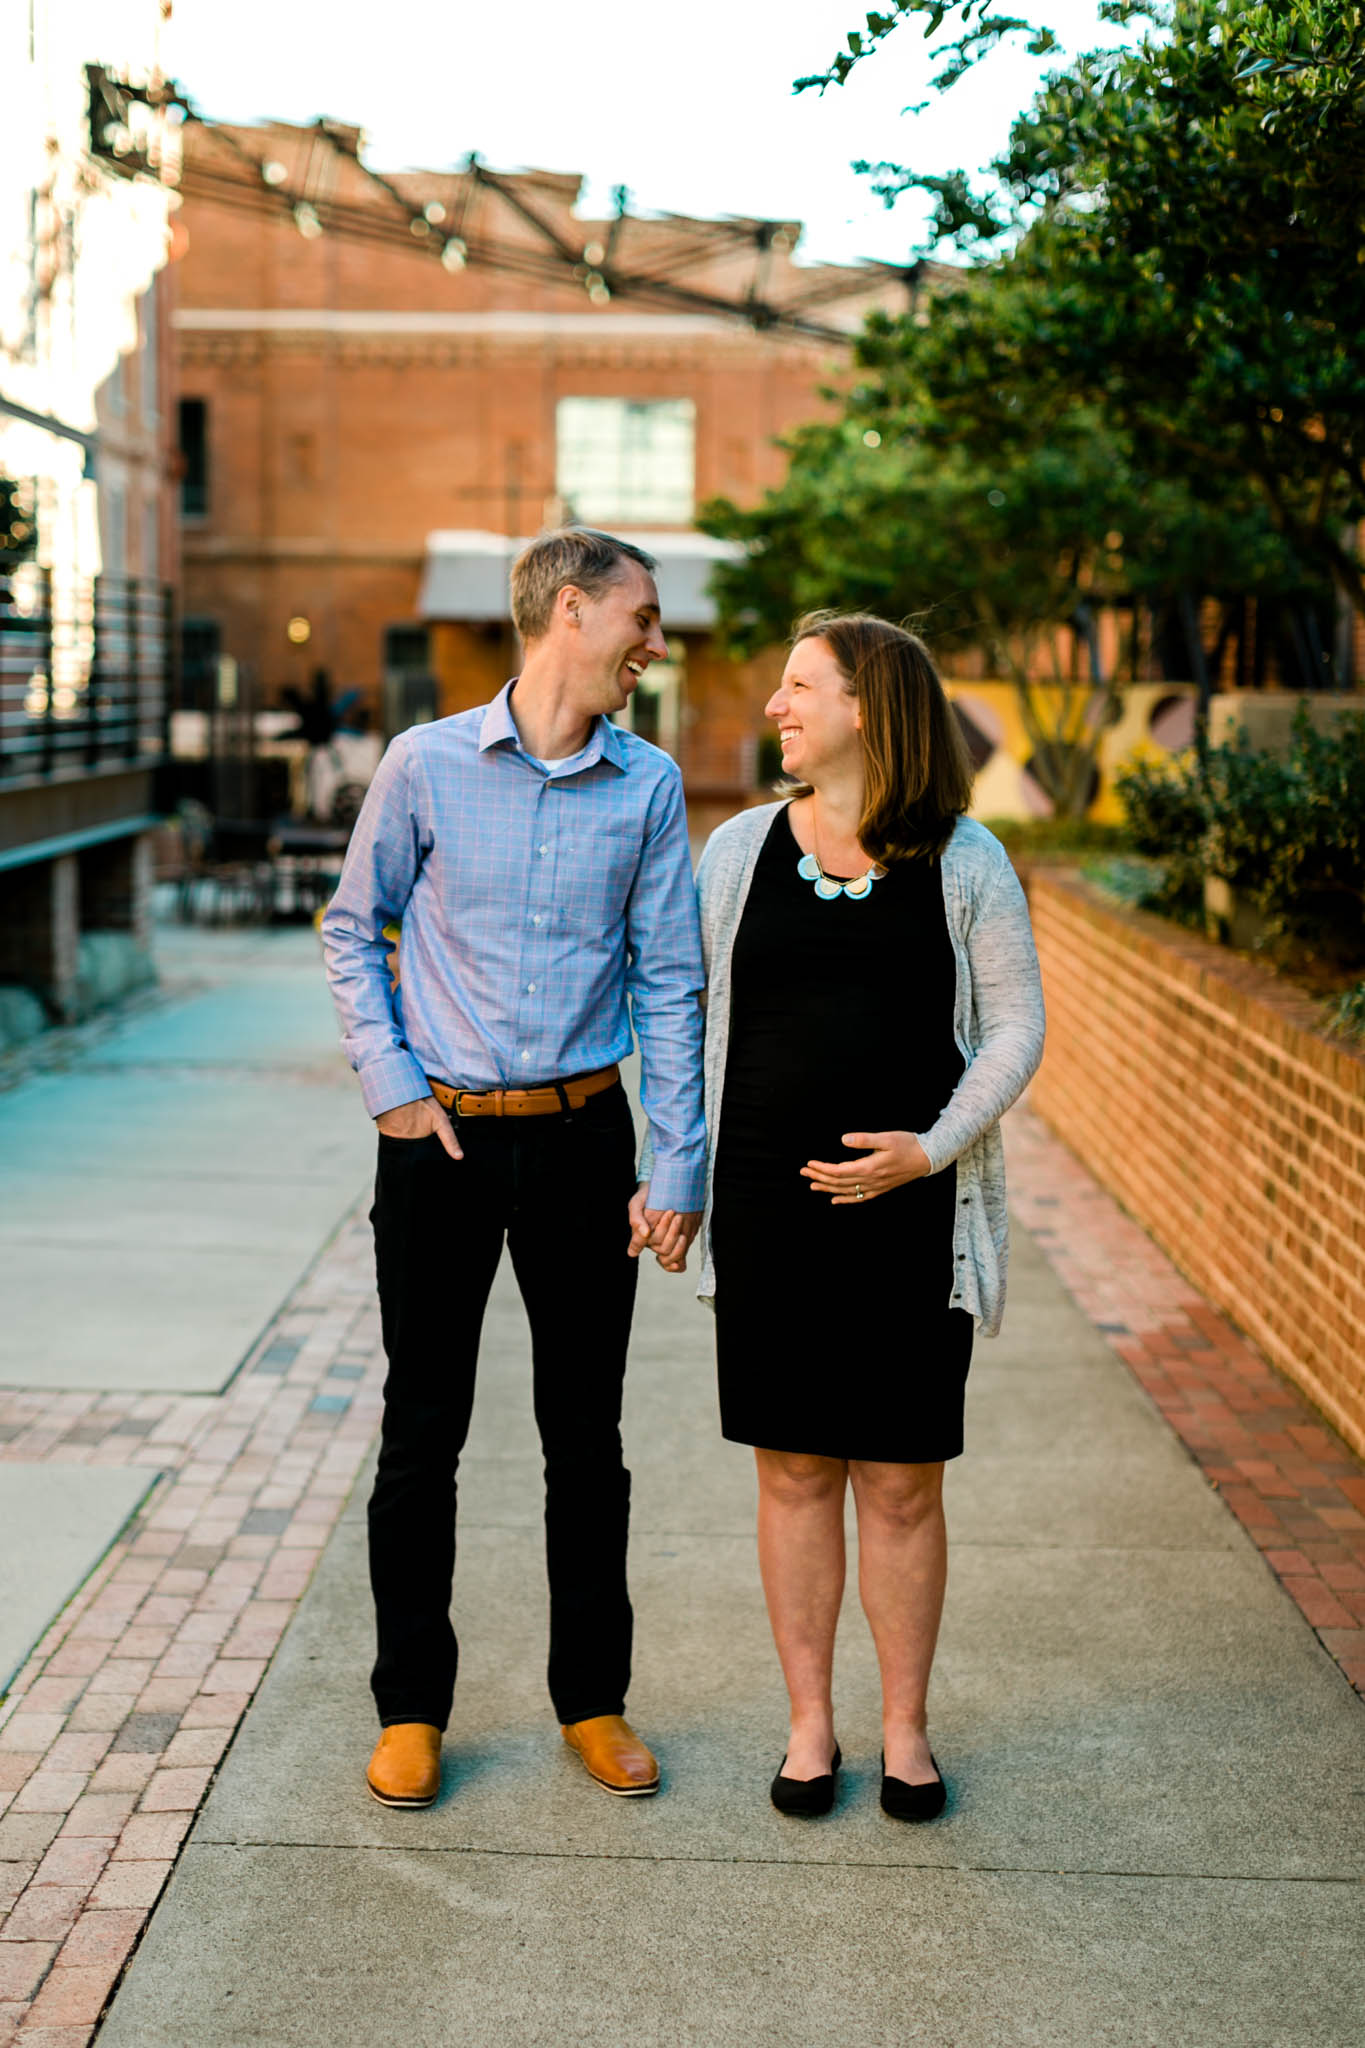 Spring maternity photo at American Tobacco Campus   Durham Maternity Photographer   By G. Lin Photography